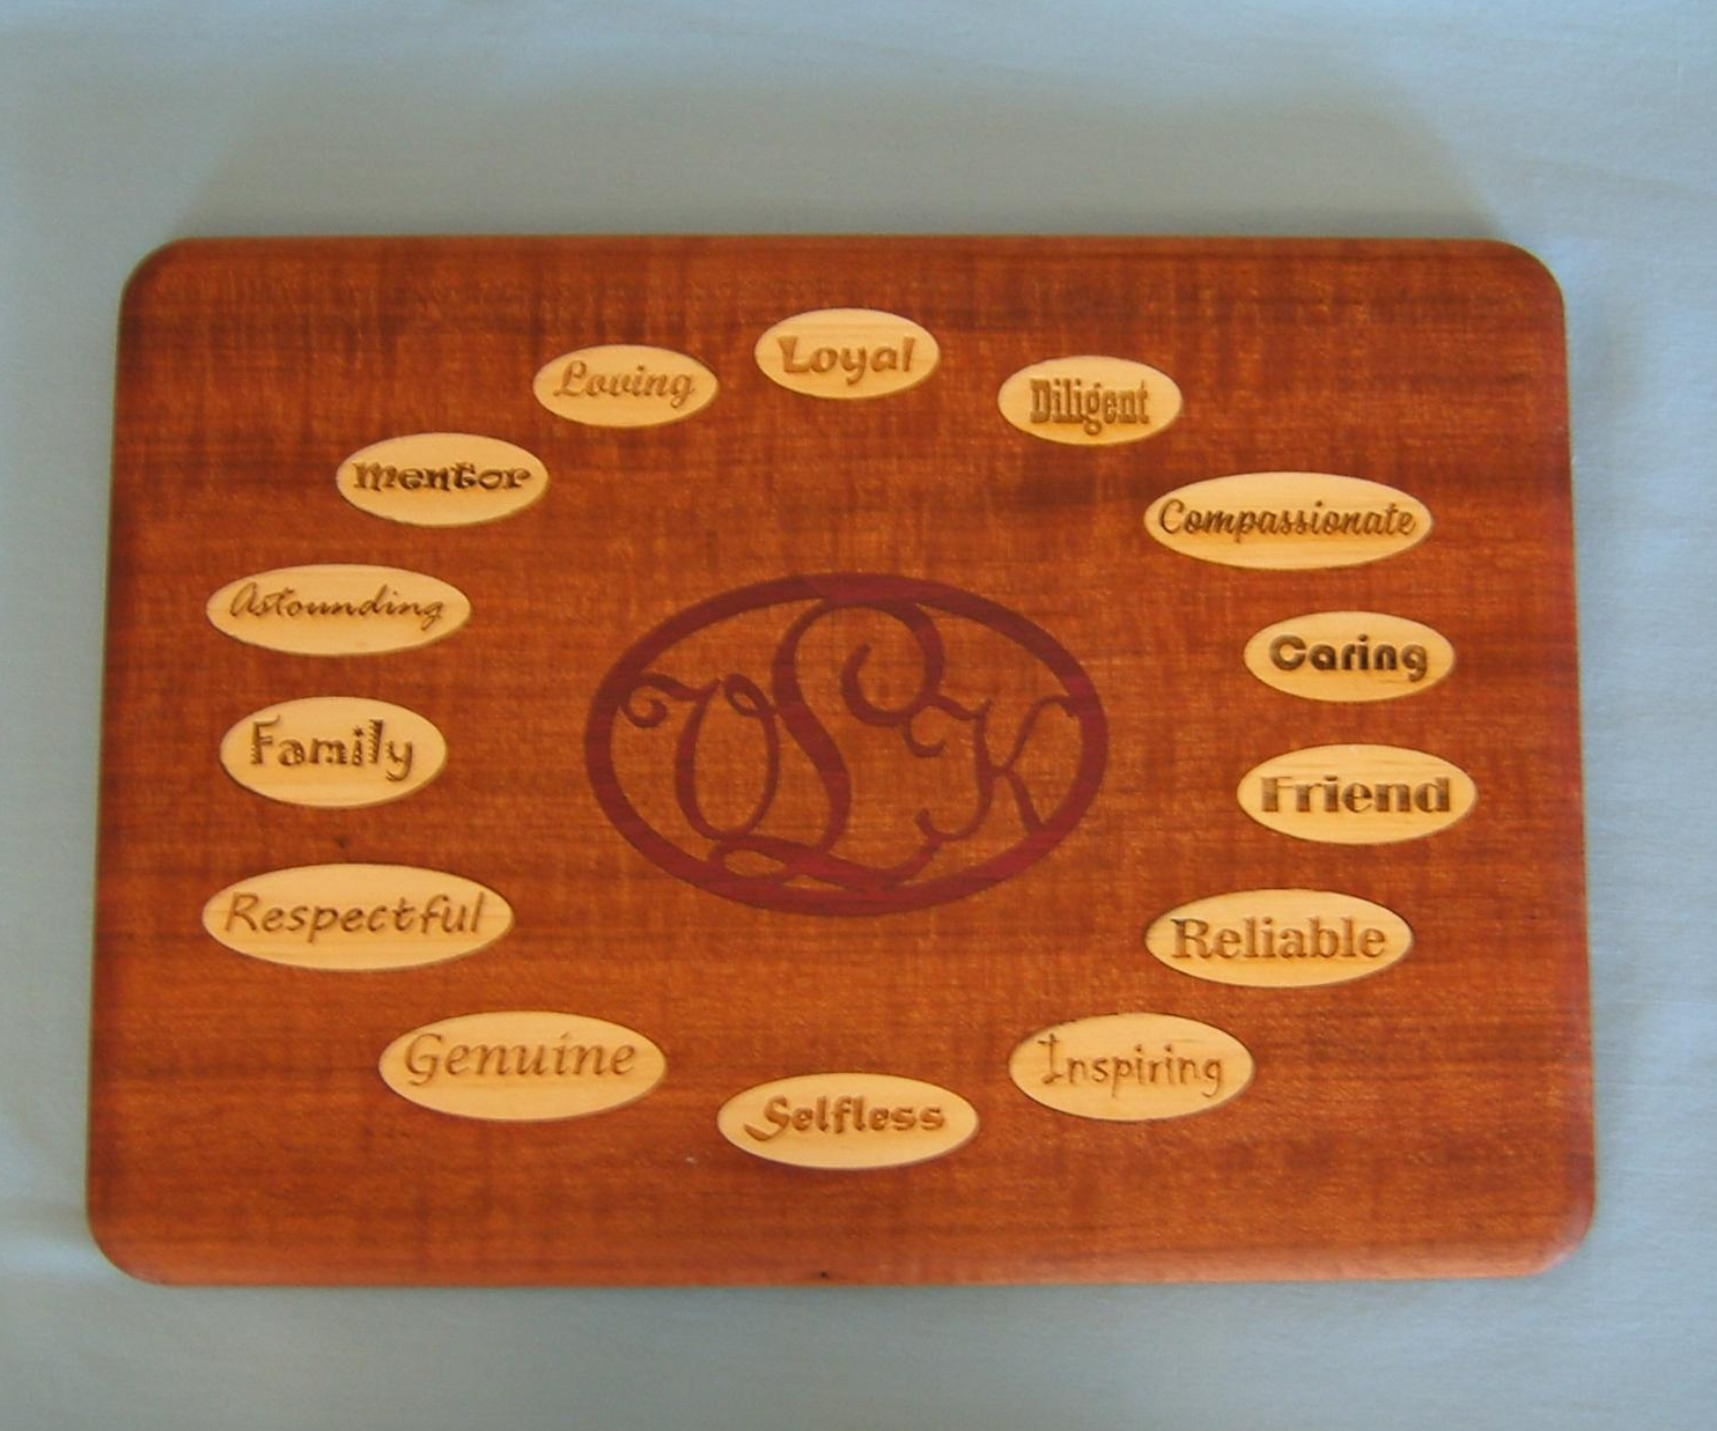 Cutting boards are fabricated from various hardwoods and designs may be laminated or specialty gifts. The boards are finished with food safe mineral oil to bring out the luster of the wood.